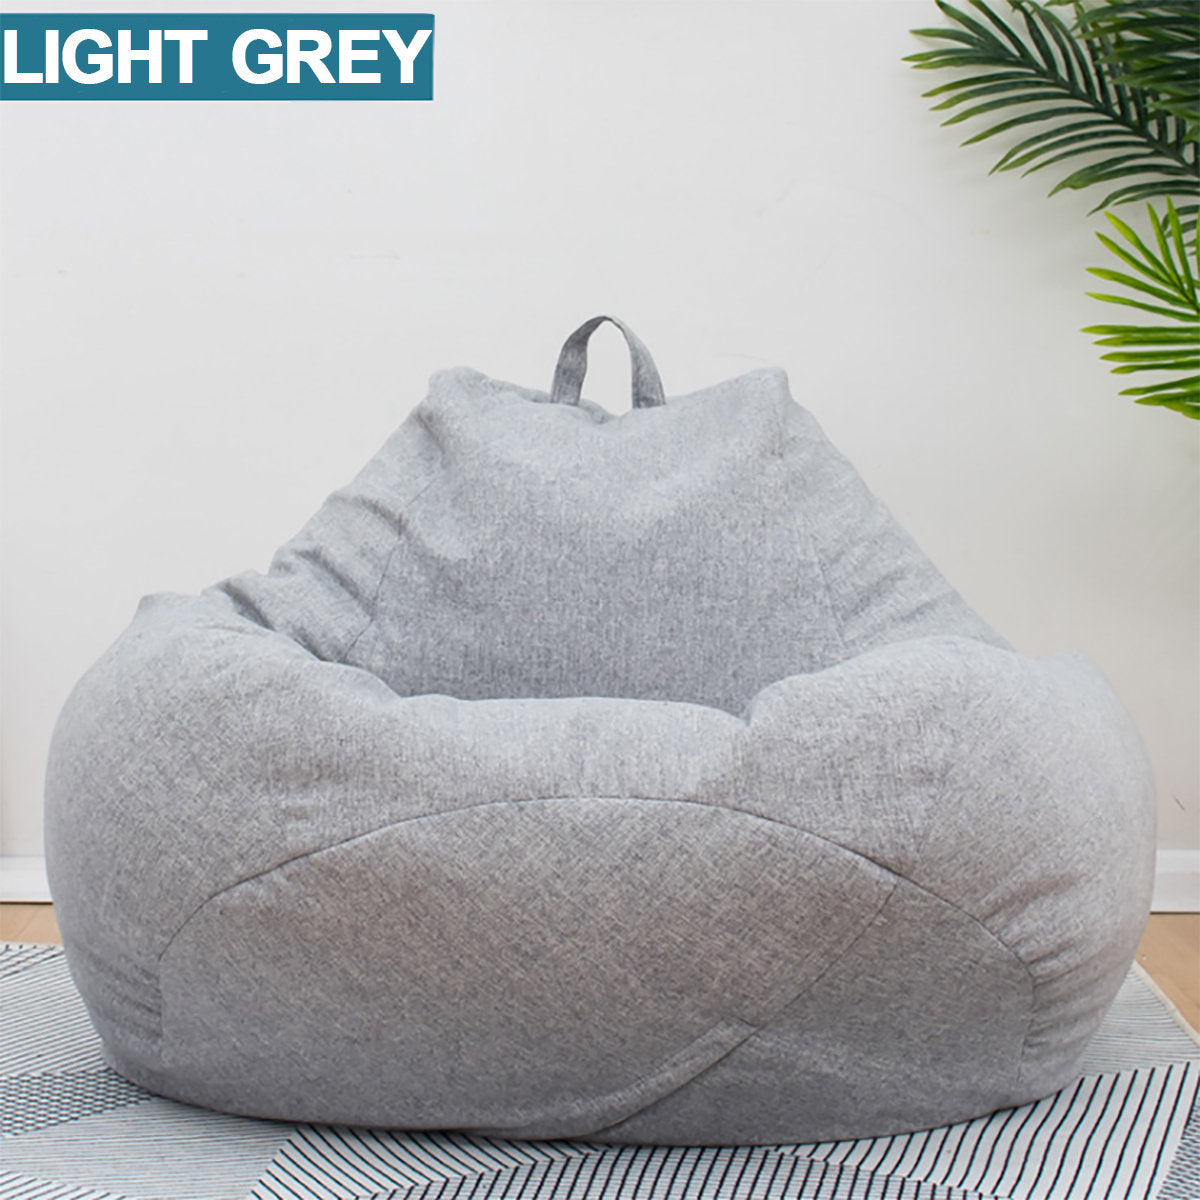 100*120cm Extra Large Bean Bag Chair Cover Indoor Outdoor Game Seat Bean Bag Lazy Sofa Cover